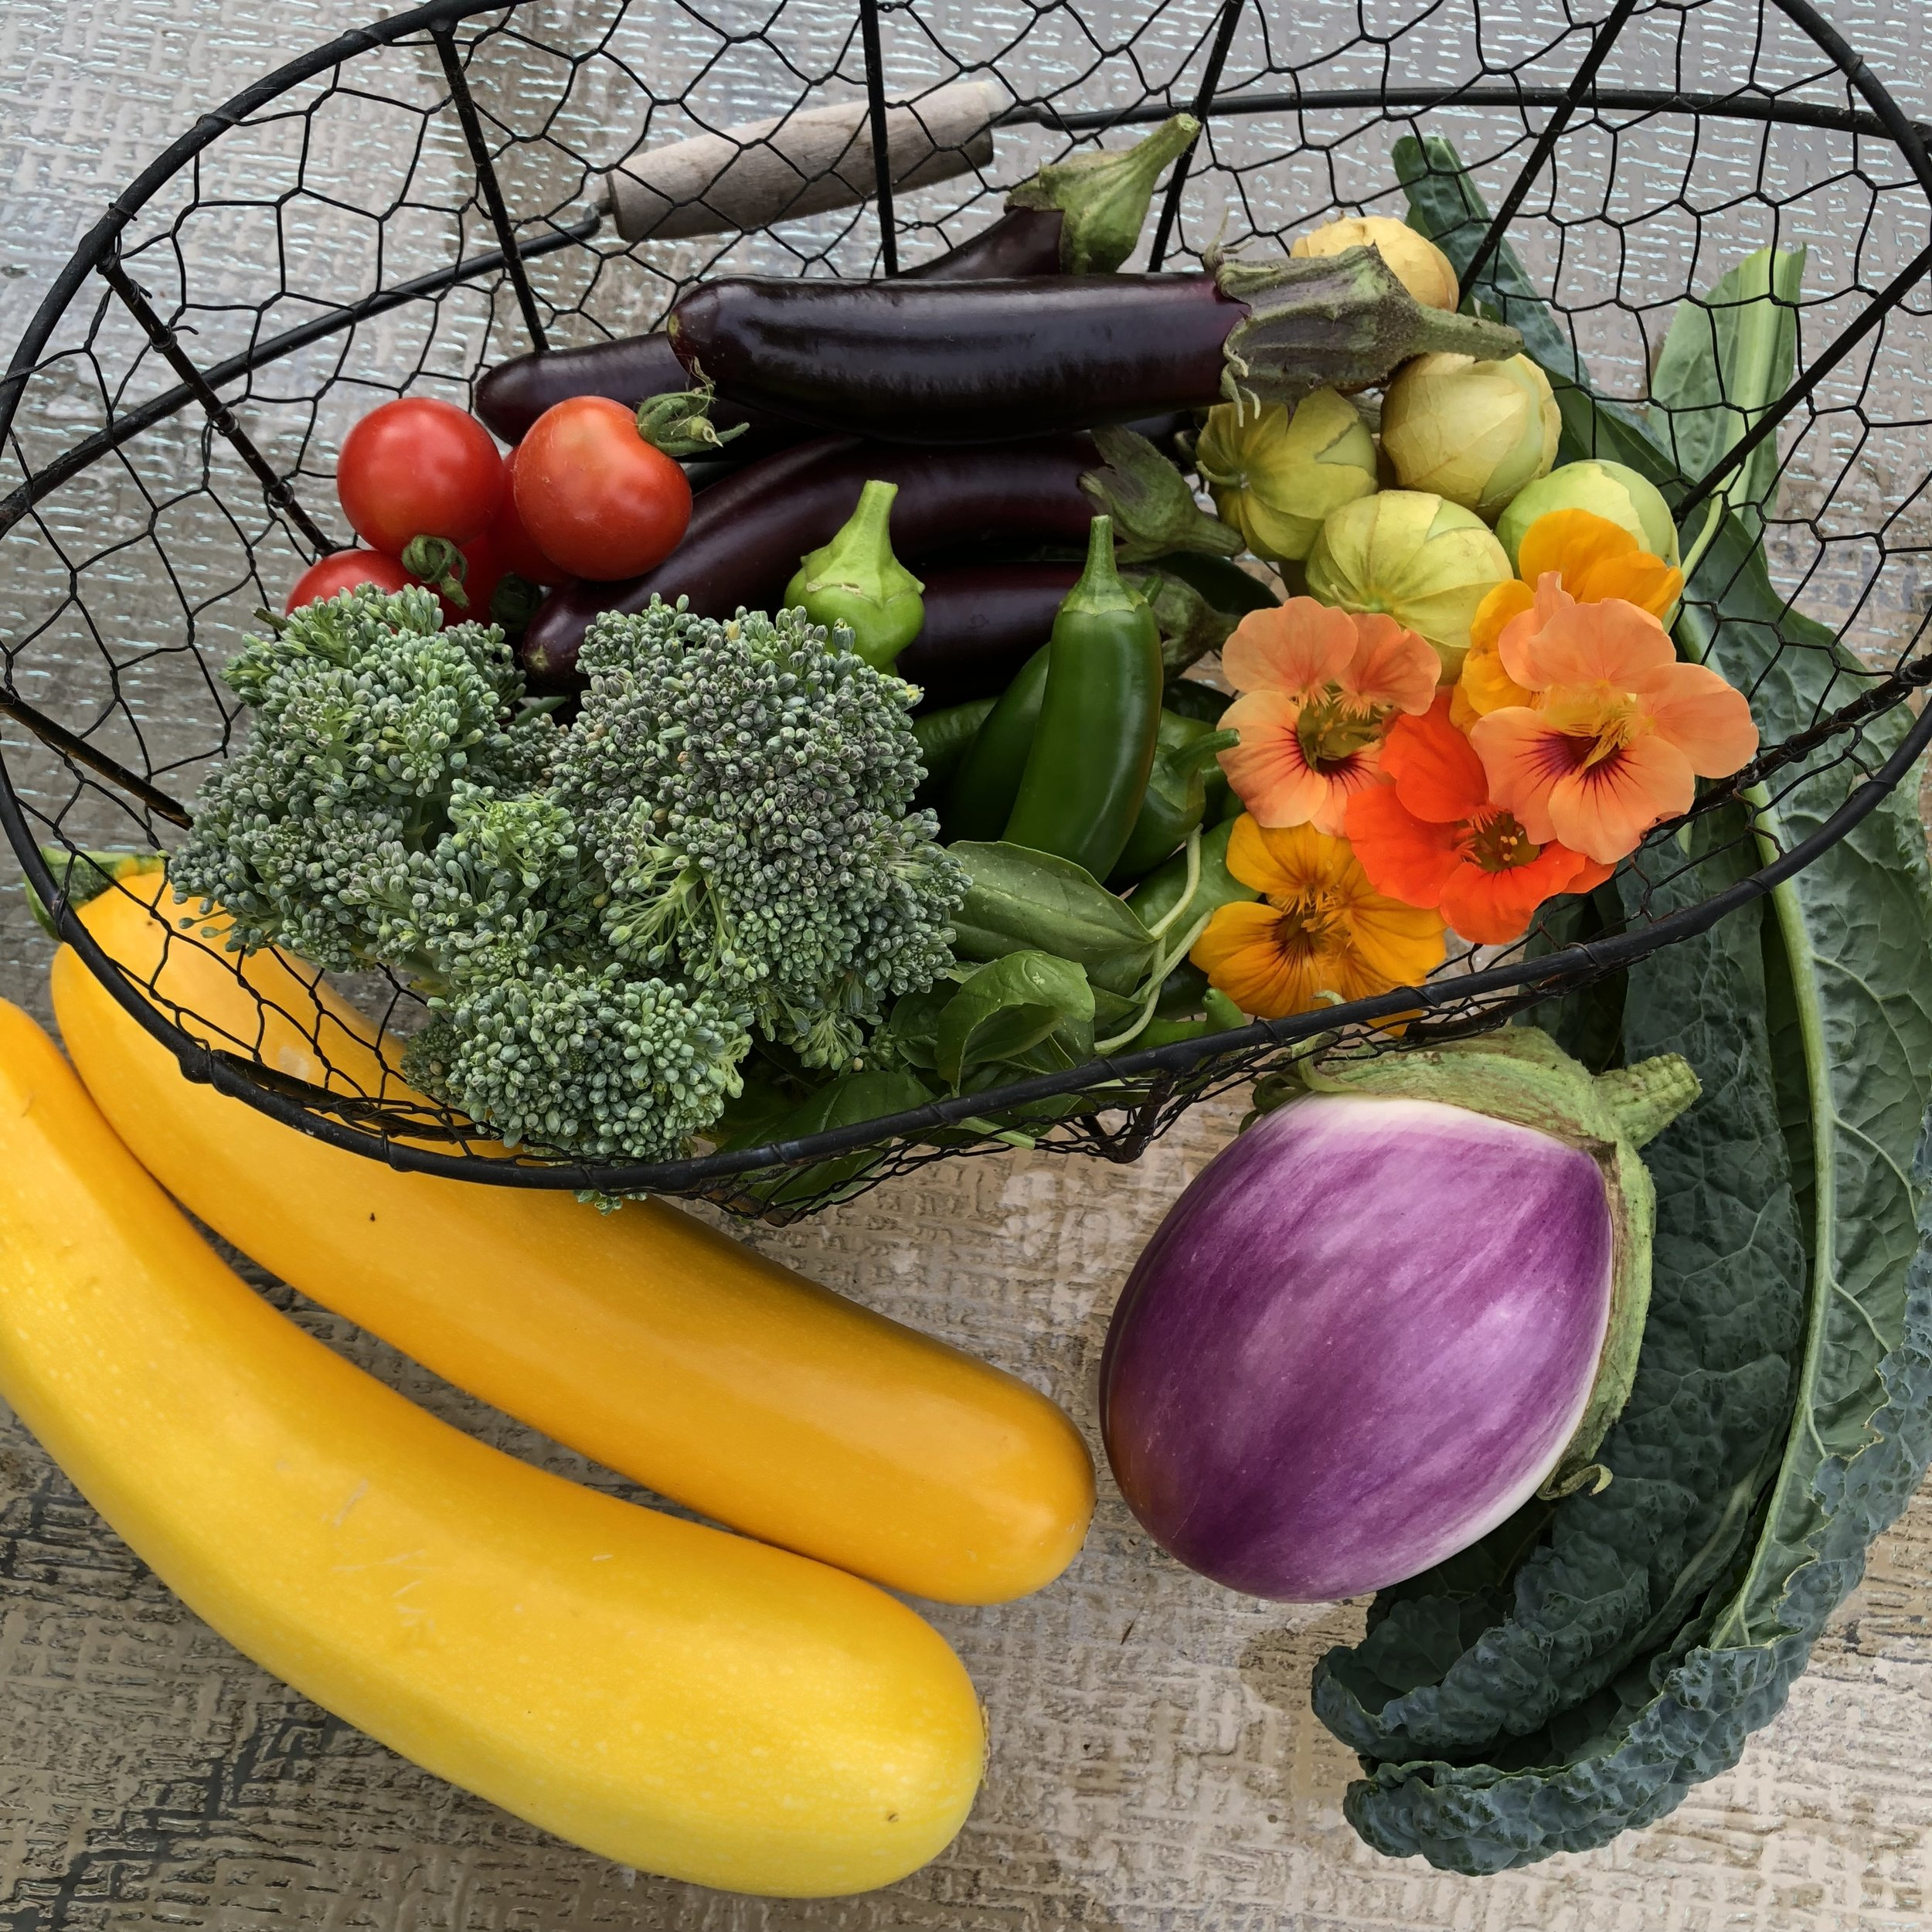 A basket of fresh vegetables, including yellow zucchini squash, purple eggplant, green broccoli, red cherry tomatoes, and orange nasturtium flowers.